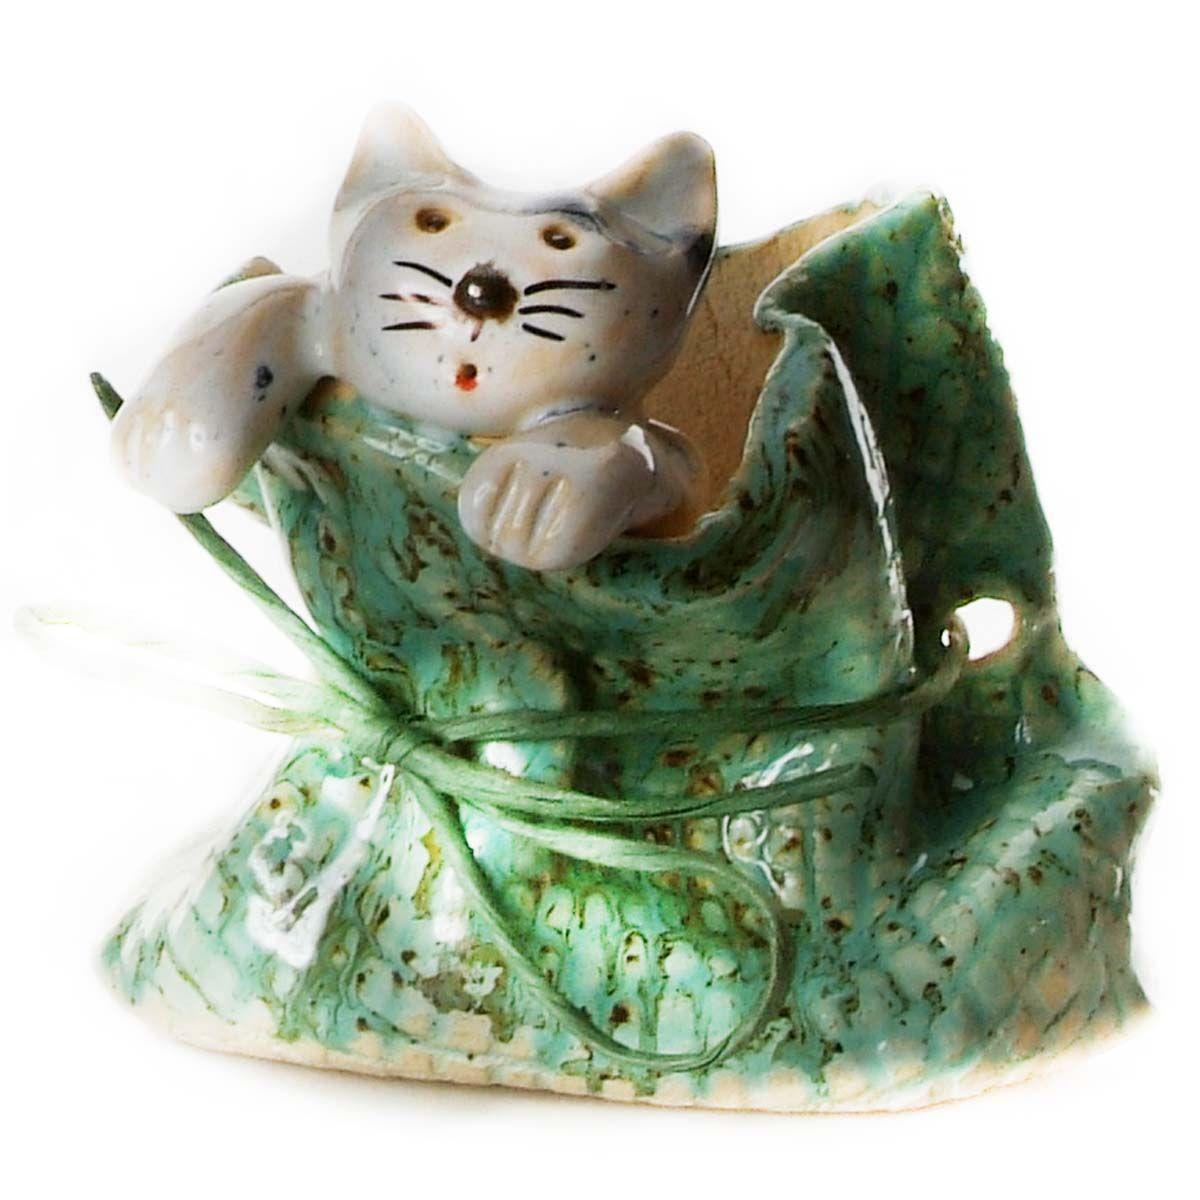 Quirky Cat in a Sack Ornament with Grey Tabby Cat